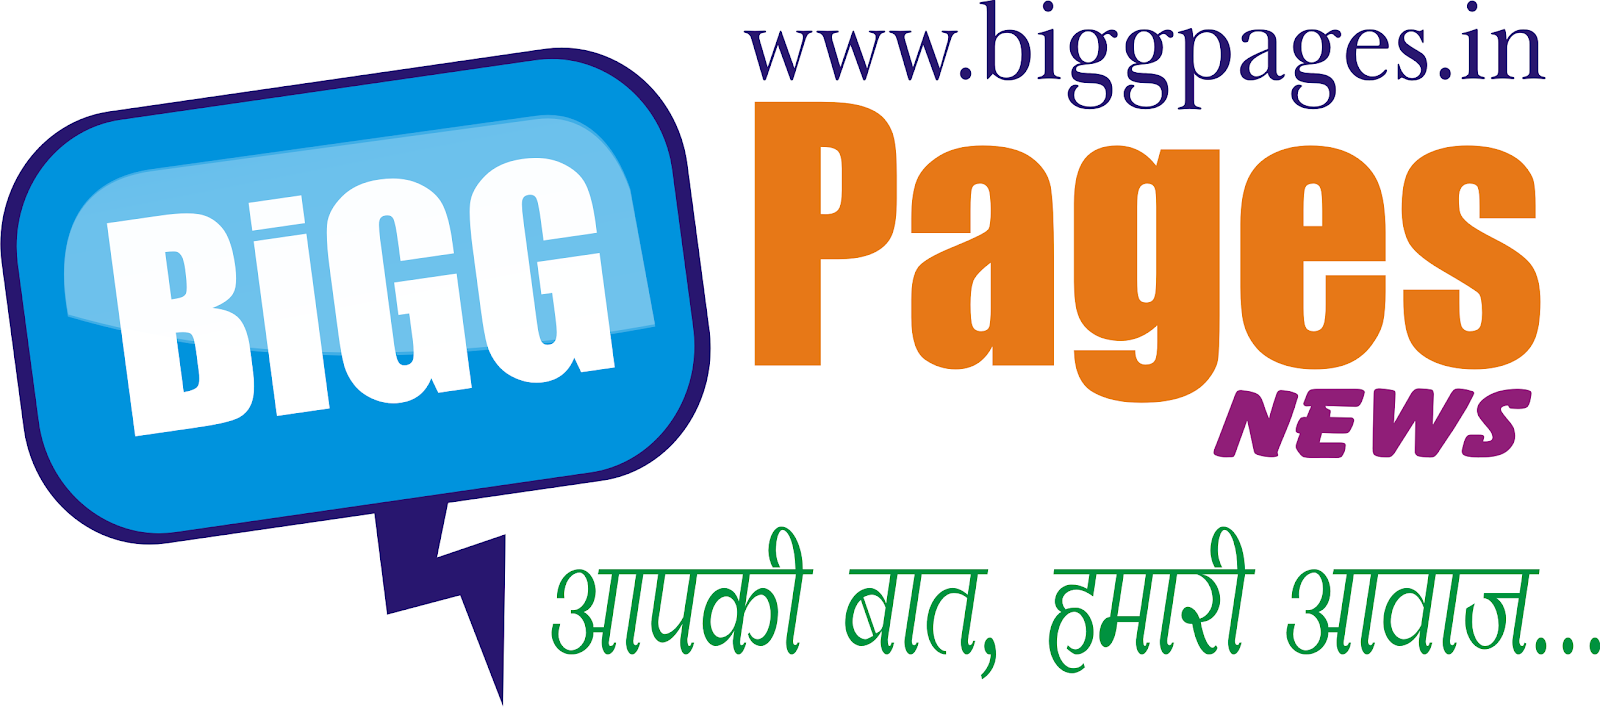 Bigg Pages News | Online Hindi News | Hindi Website | News in Hindi | Hindi News Website